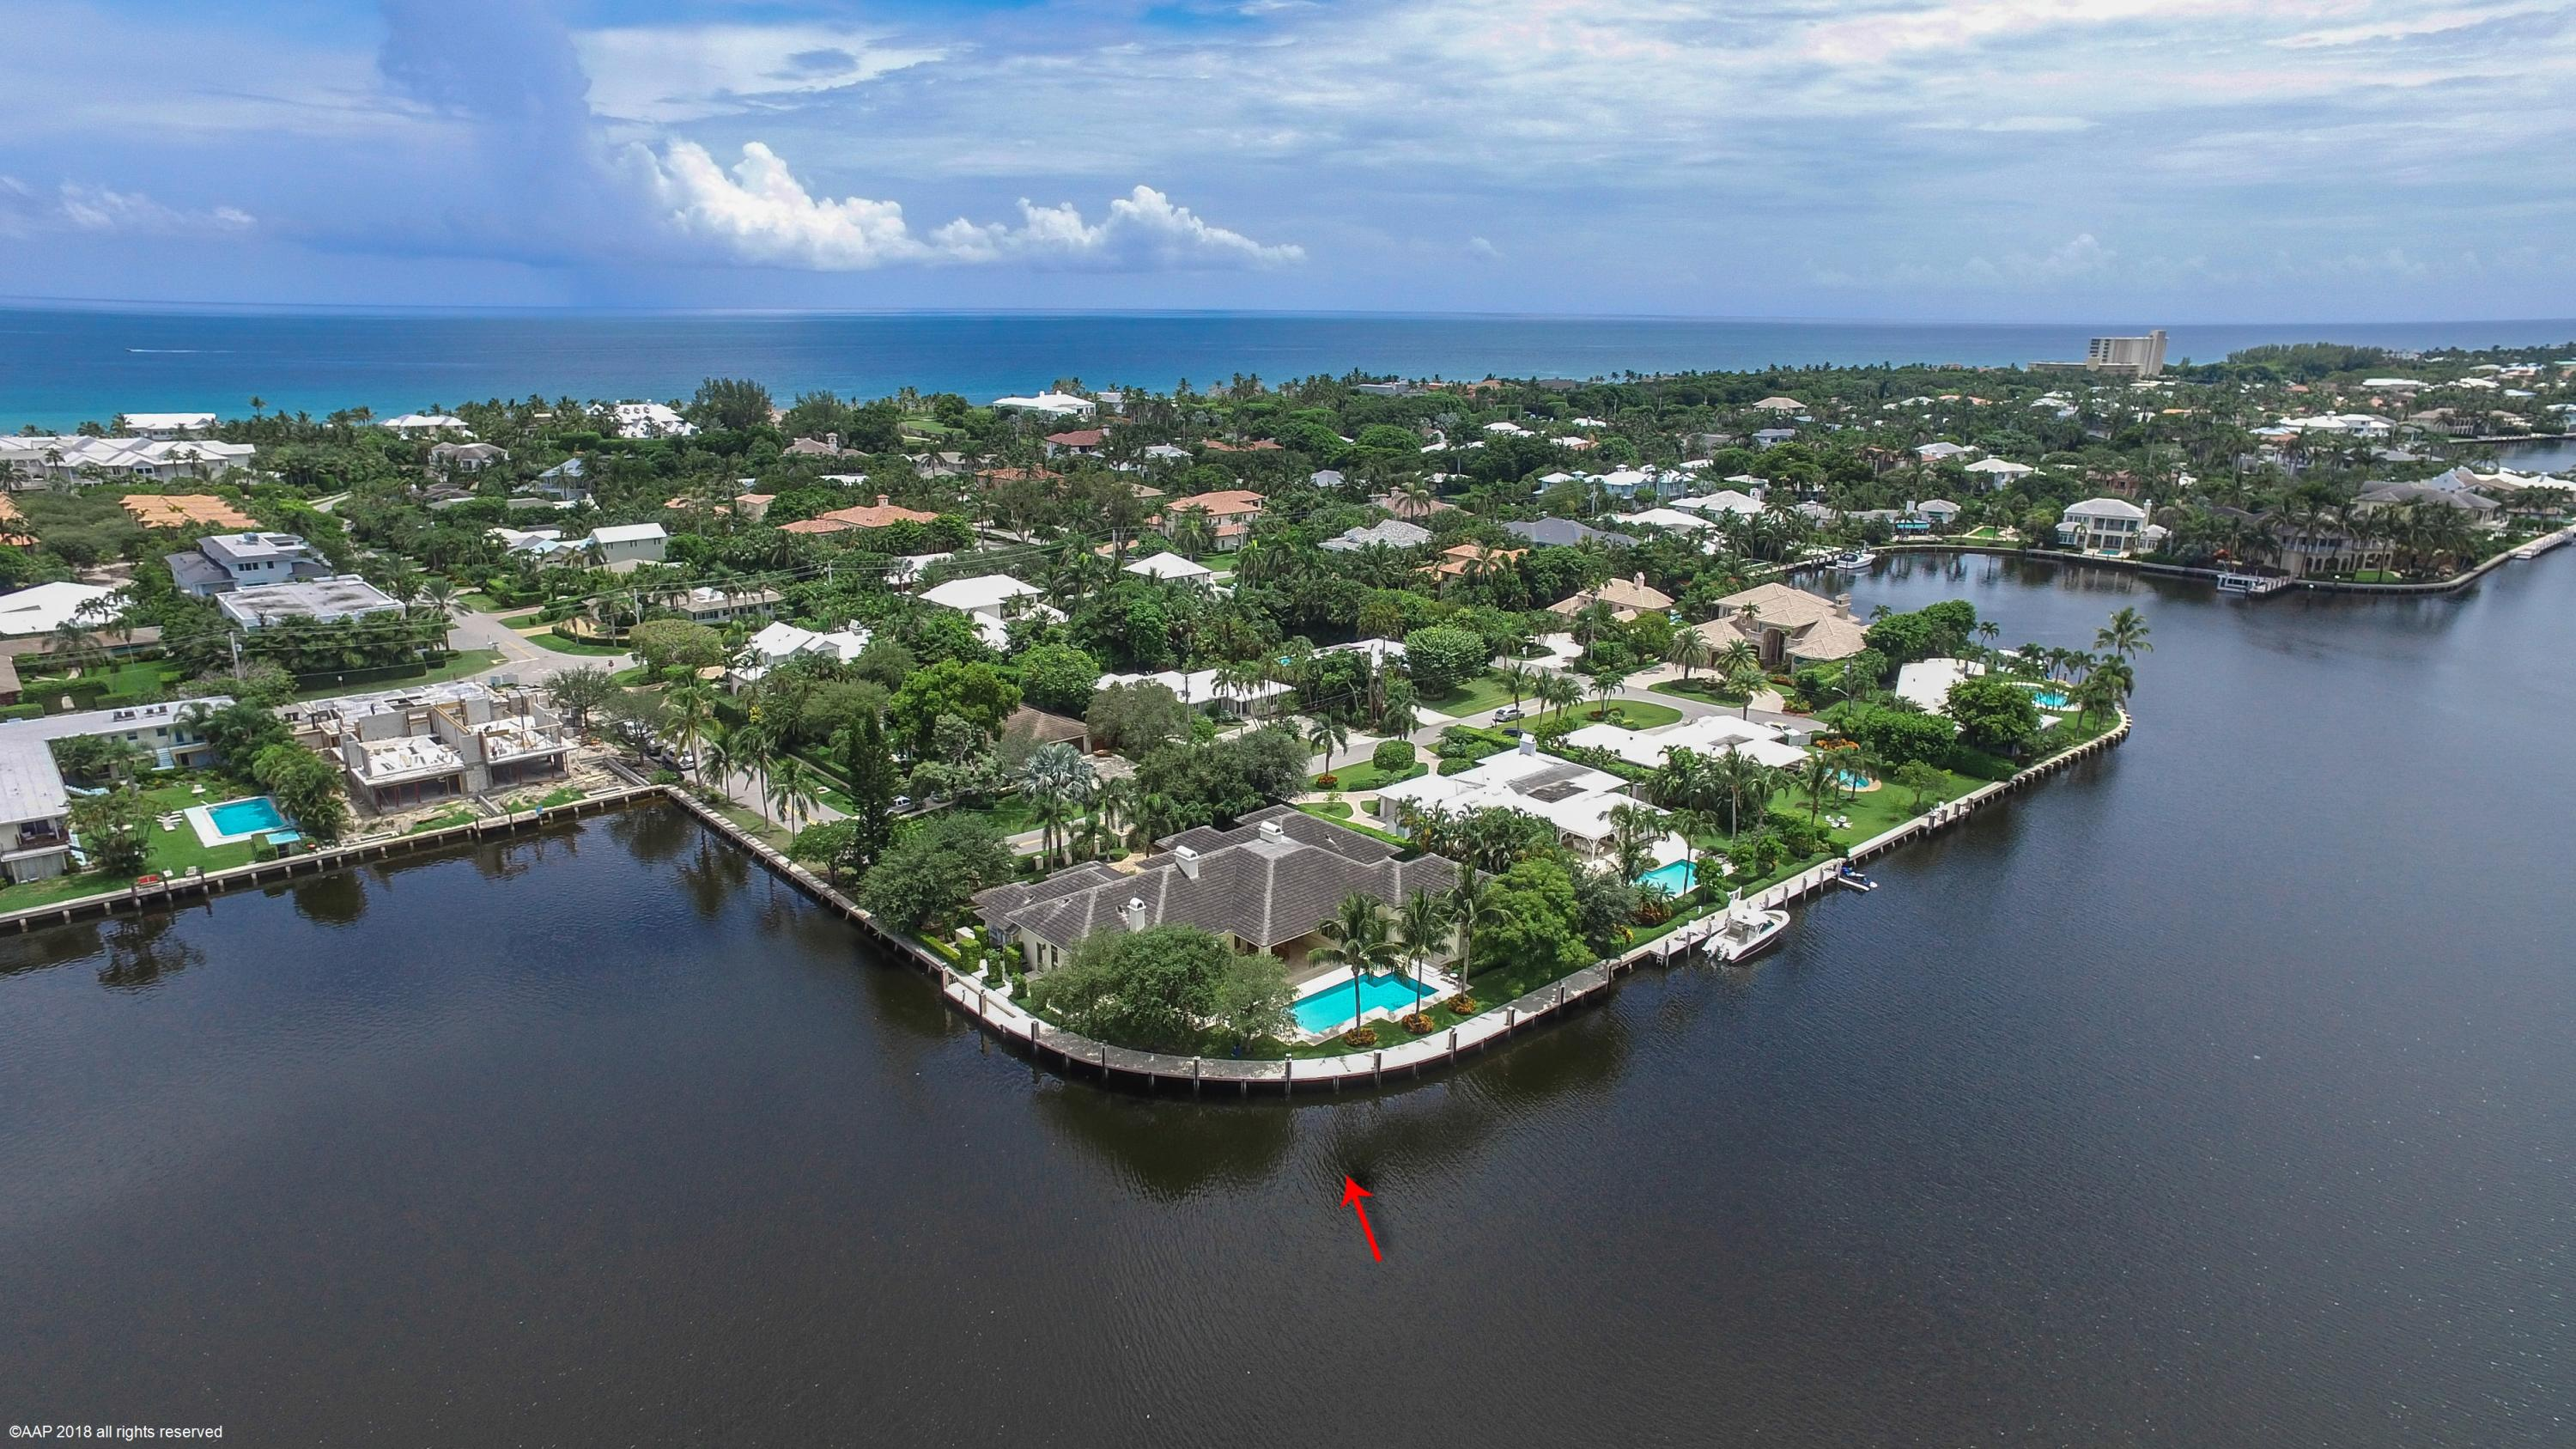 This Beautiful Custom Built One Story Gated Estate is situated on a .44 acre Intracoastal Point Lot with  253+/- of Waterfrontage in a desirable ''Slow Wake Zone.'' This is truly one of the Best lots in East Delray. The property is only Blocks to Atlantic Avenue and the Beach. Features Include an Open Concept Floorplan. Volume Ceilings, a Large Great Room with Fireplace, an eat in Kitchen boasting a huge center island, a beautiful brick designed Stove area and separate formal Dining Room, an Office/Den off the Master which includes a sitting area, a large Exercise Room & a glorious master bath. There's a separate ''wing'' w/3 en suite bedrooms which surround their own family Room The outdoor area is a dream w/a huge covered loggia, summer kitchen w/ pizza oven and Dockage for a large Yacht